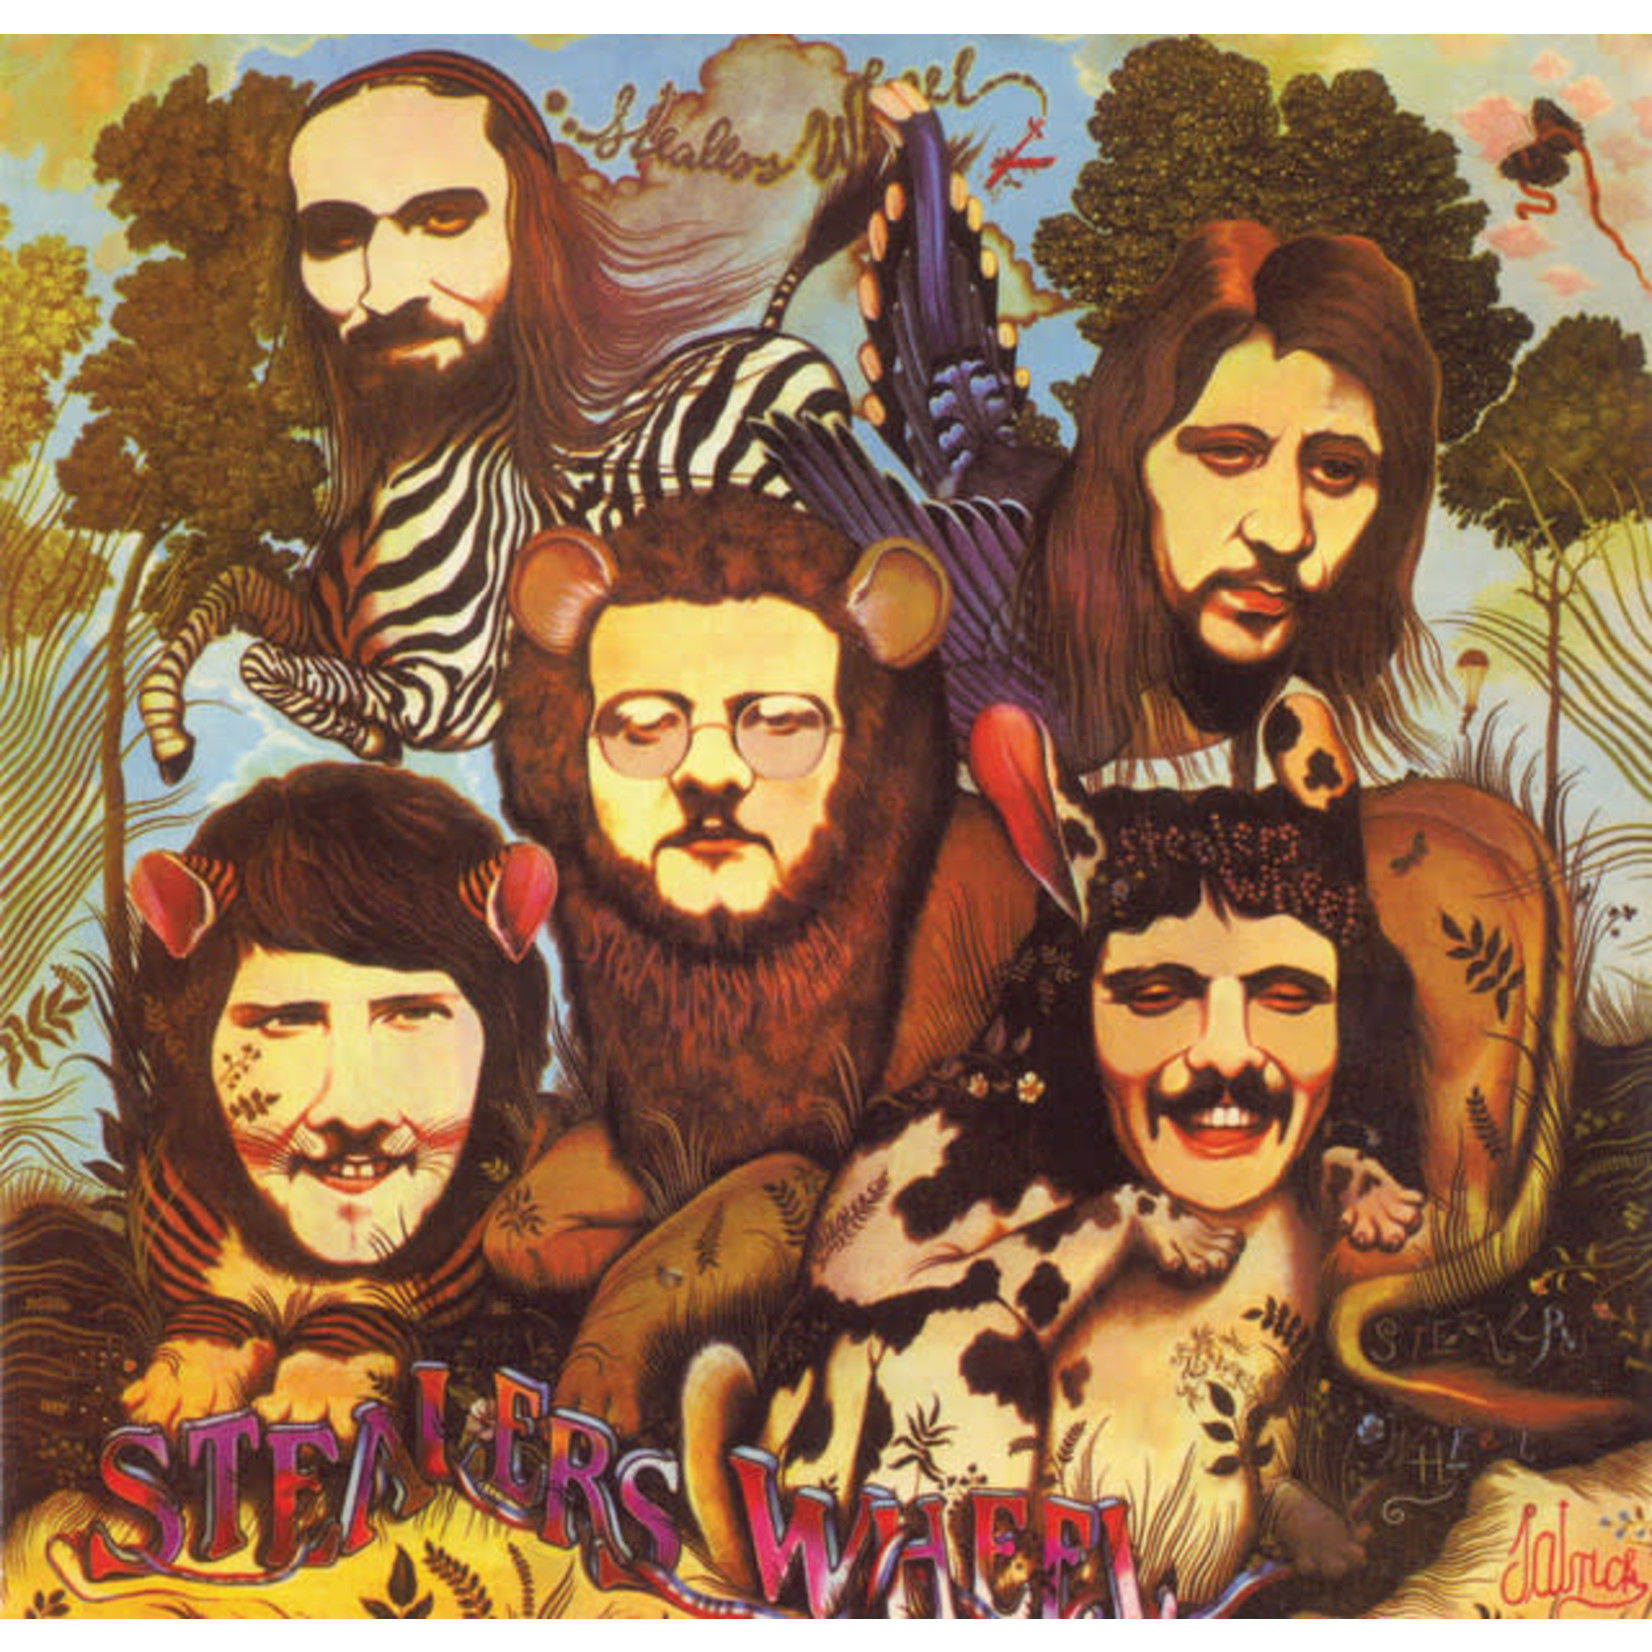 Vinyl Stealers Wheel - S/T